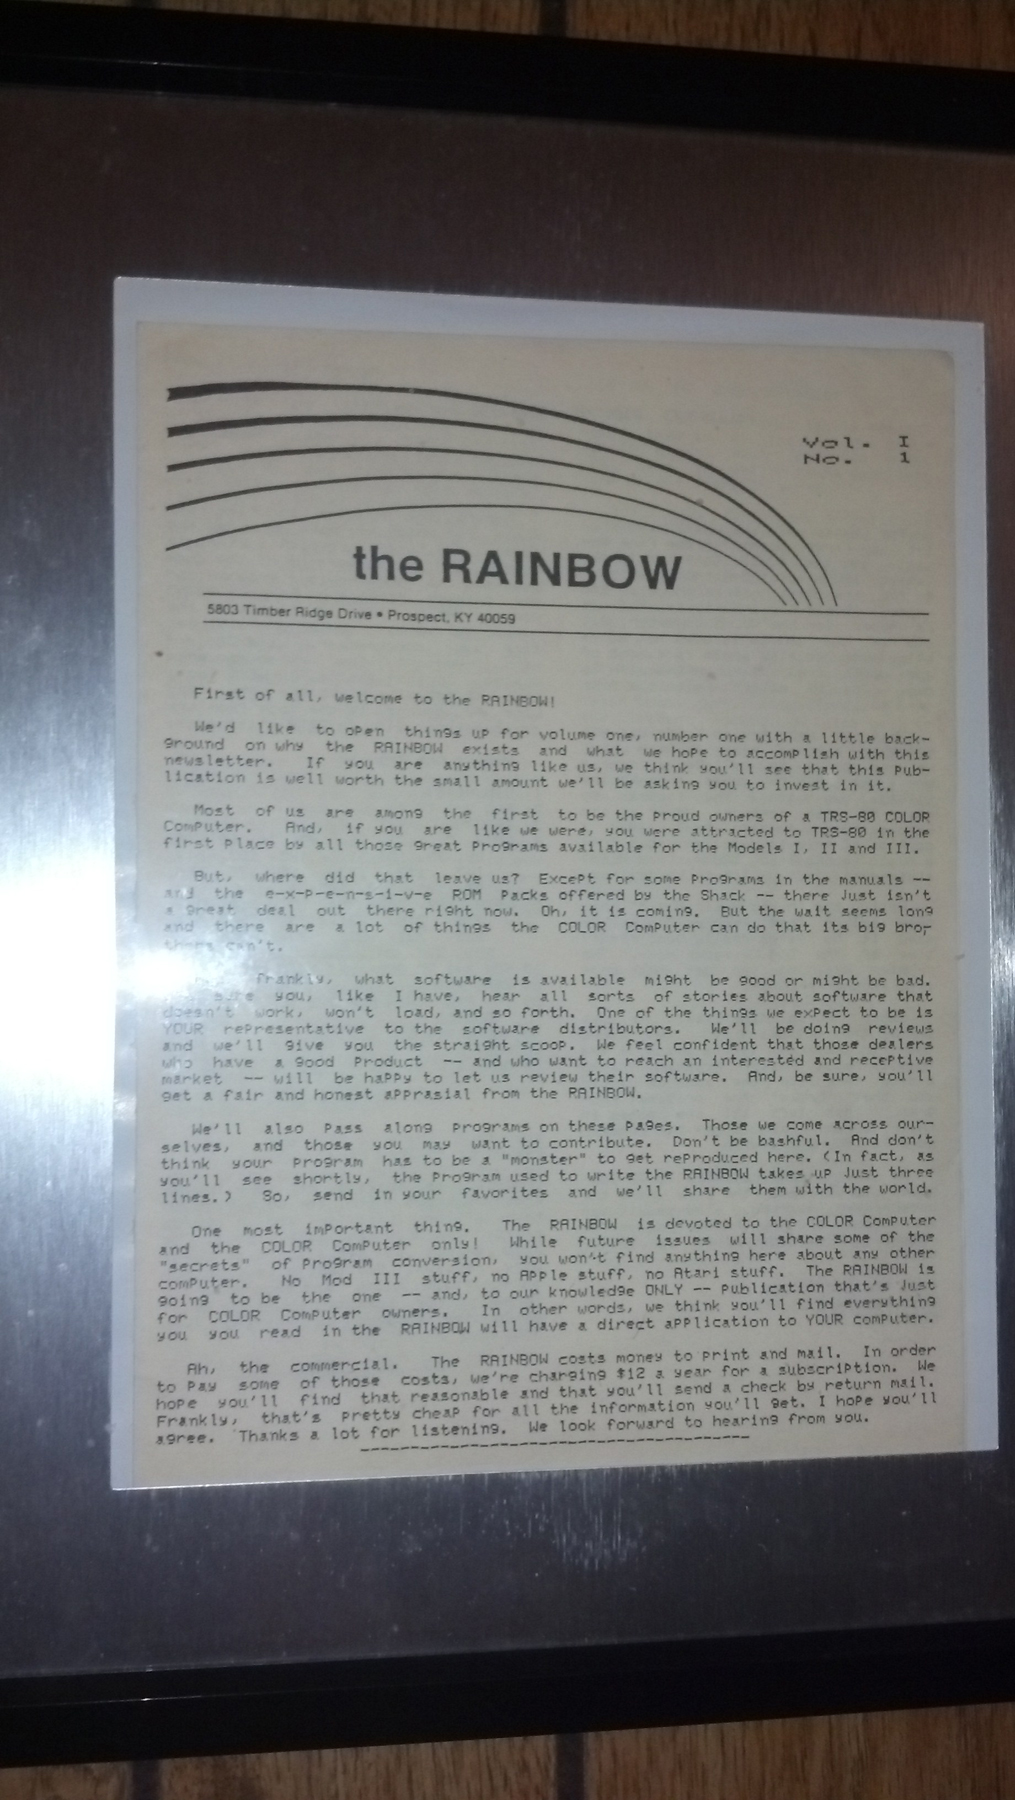 The Rainbow Issue 1